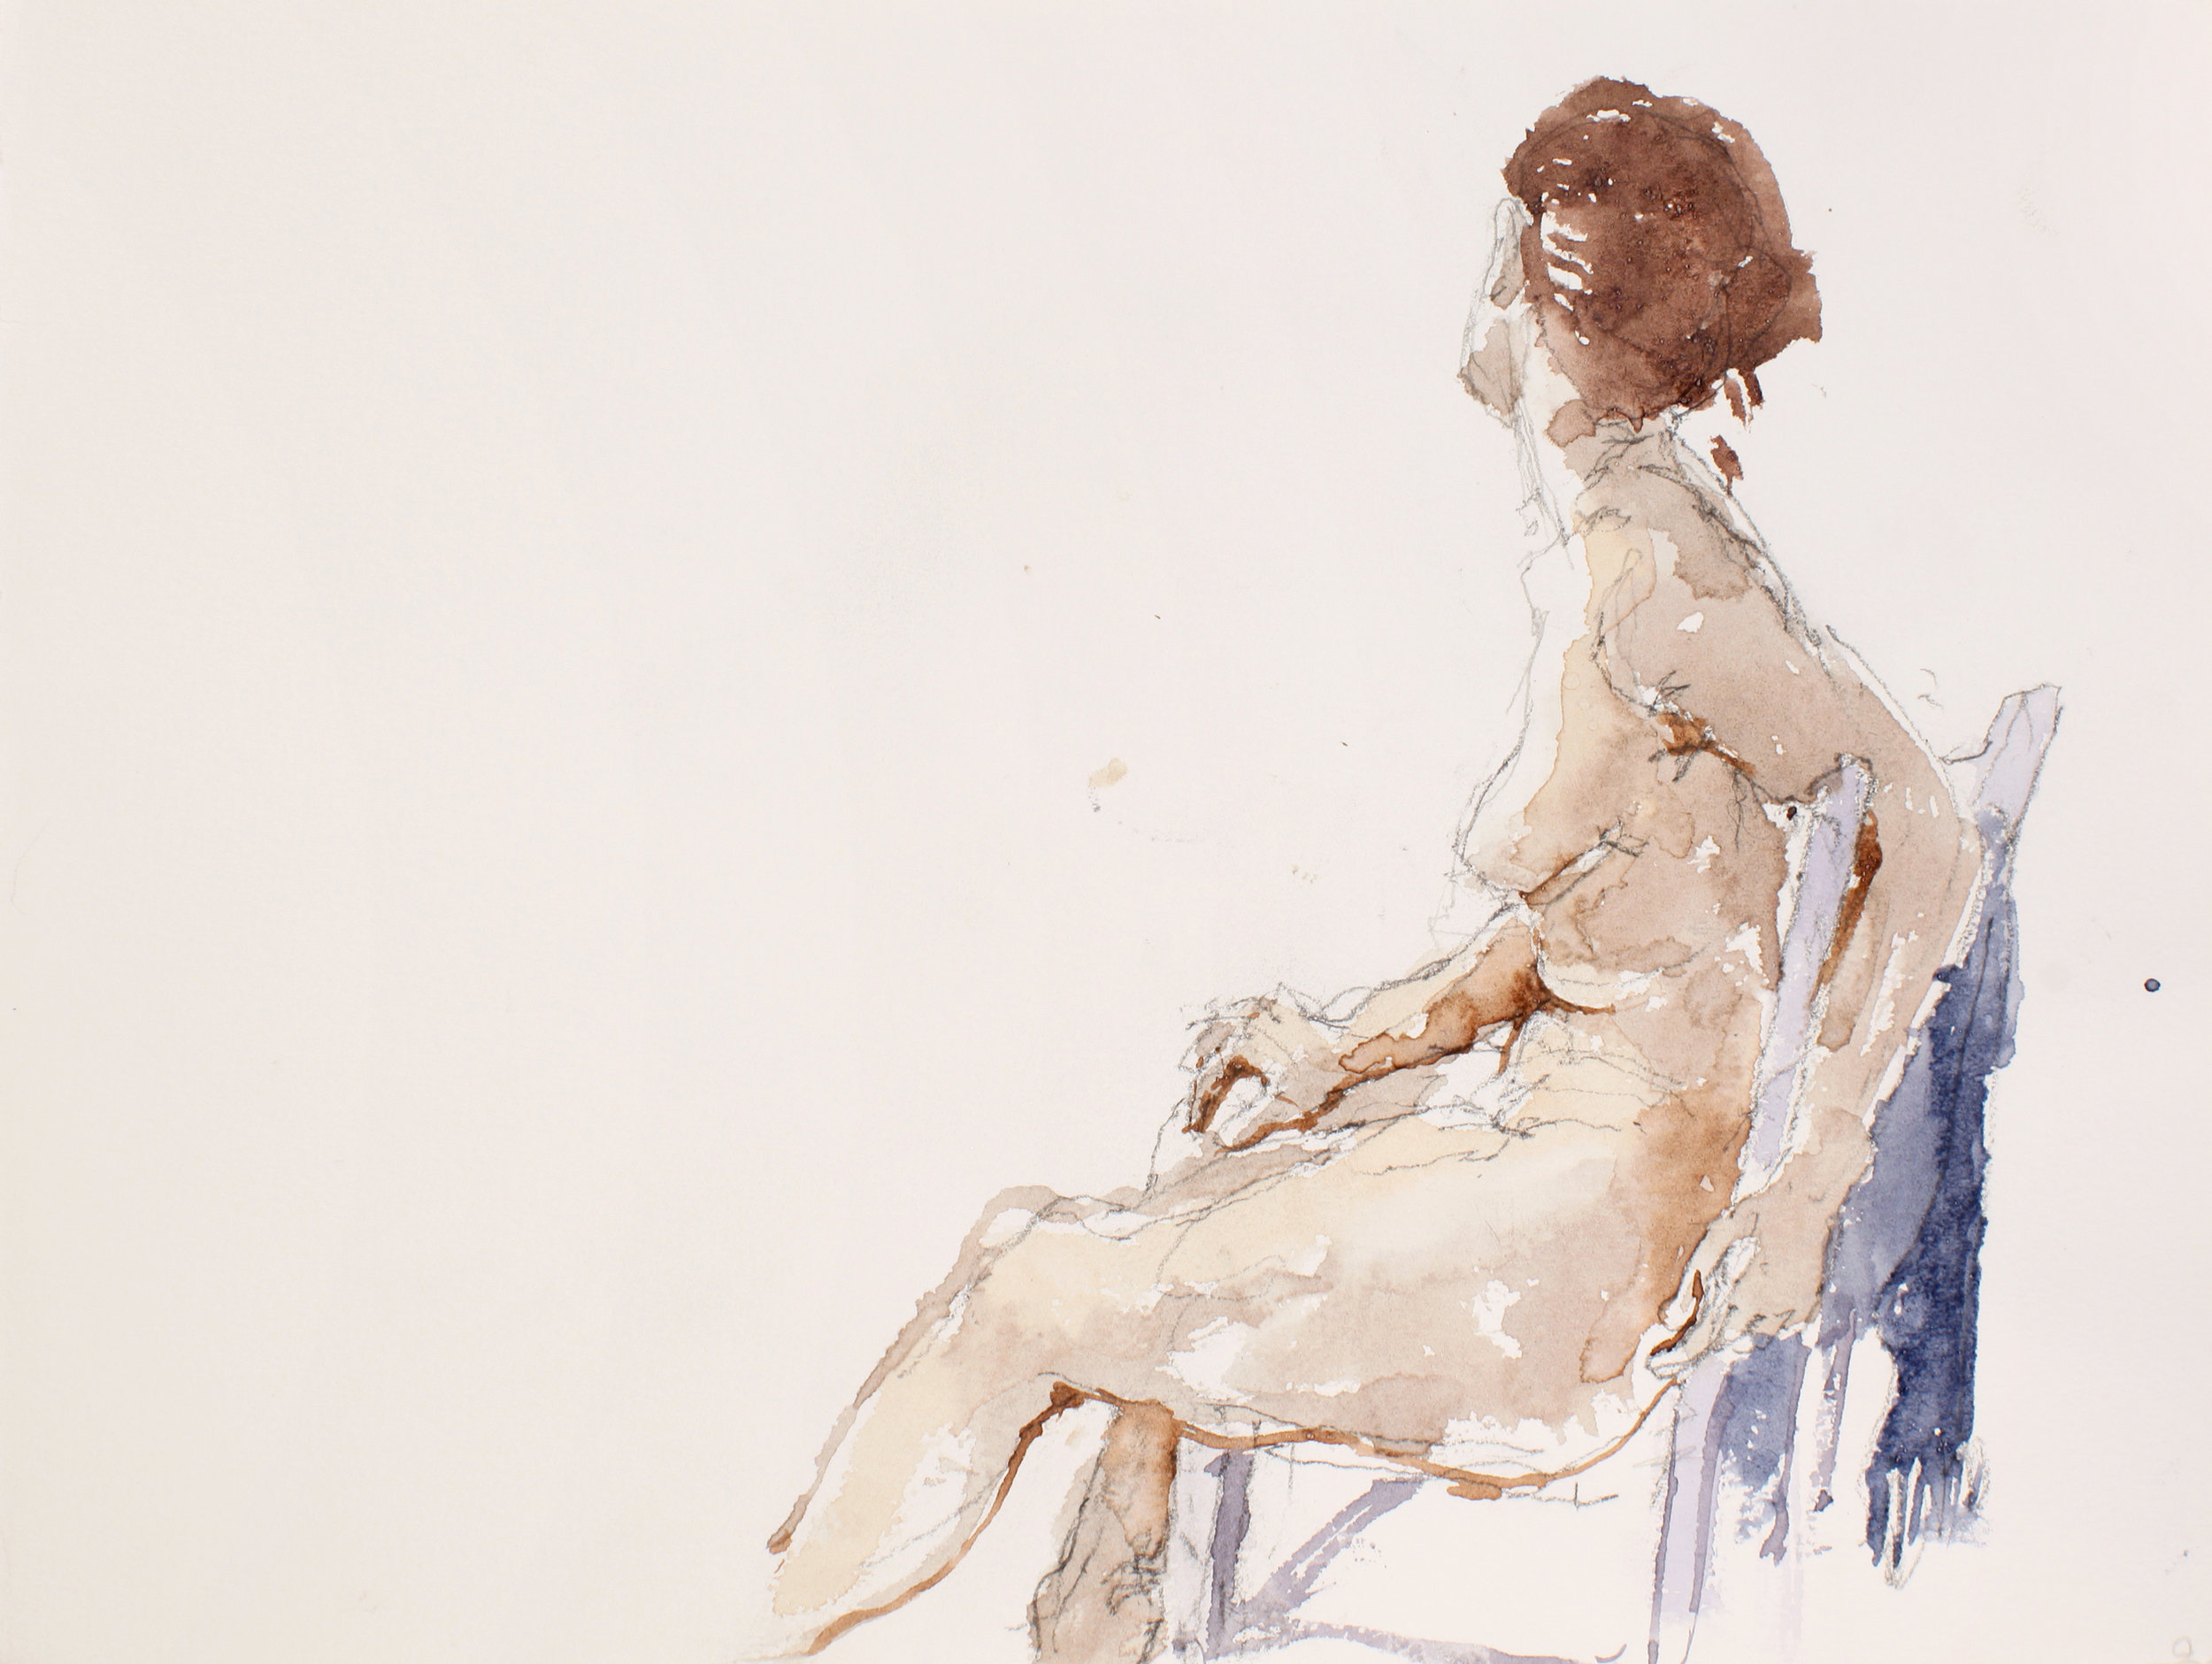 2008_Seated_Nude_in_Profile_with_Blue_Scarf_on_Chair_Back_watercolour_and_pencil_on_paper_11x15in_WPF563.jpg